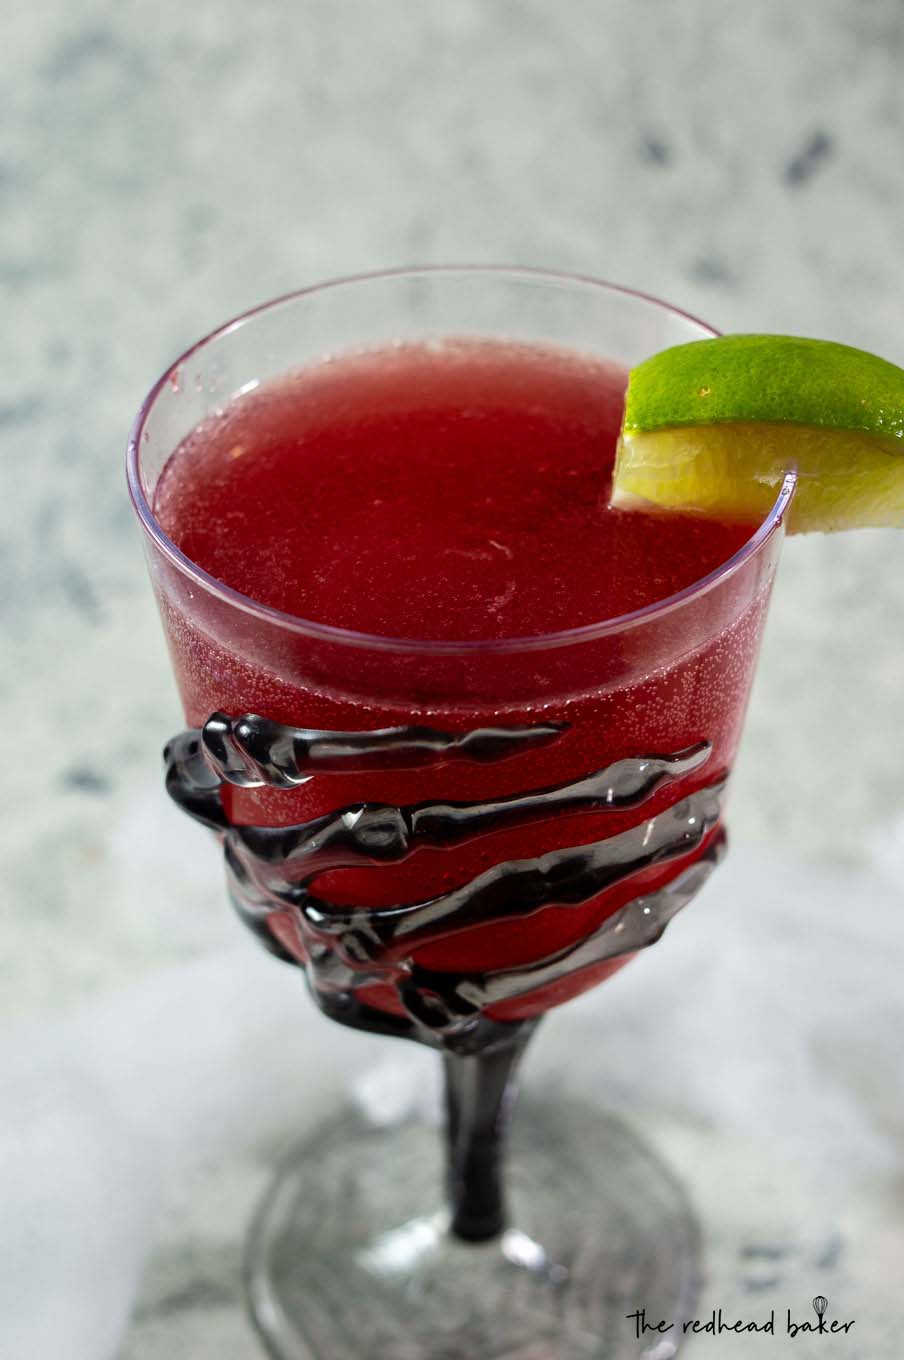 A close-up of a glass of pomegranate margarita